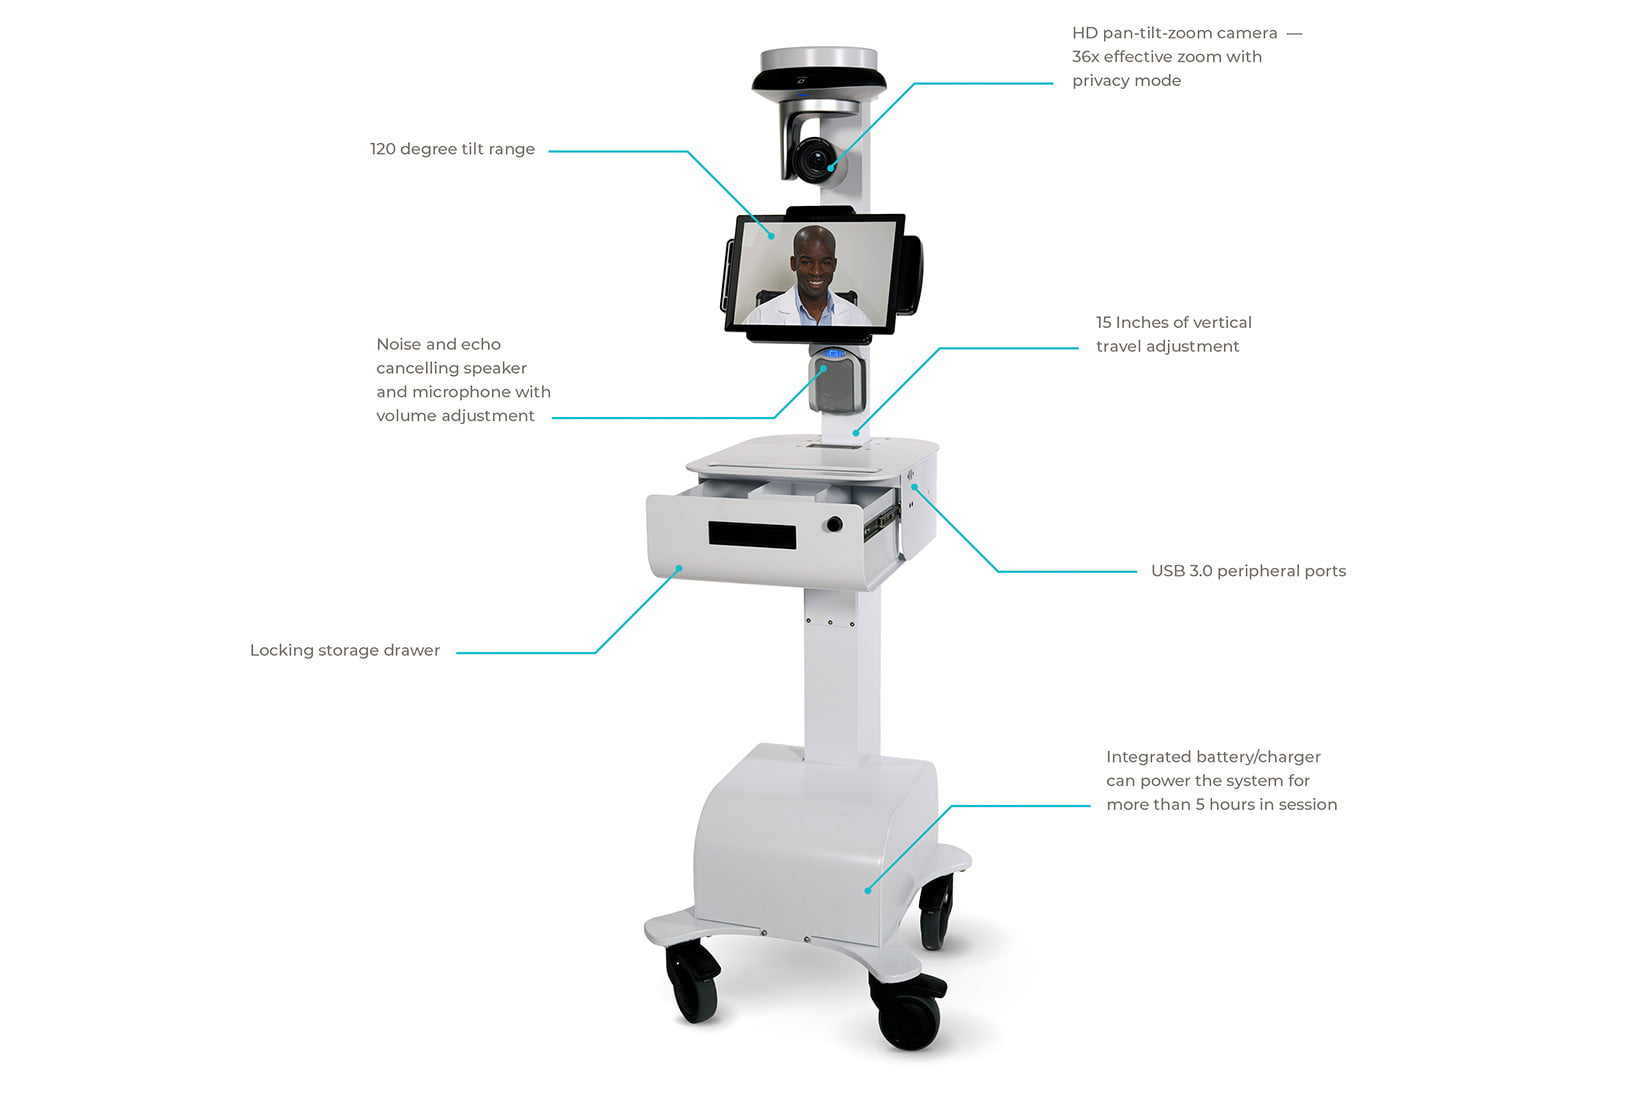 The robot, known as Vici, was developed by InTouch Health / Courtesy of inTouch Health